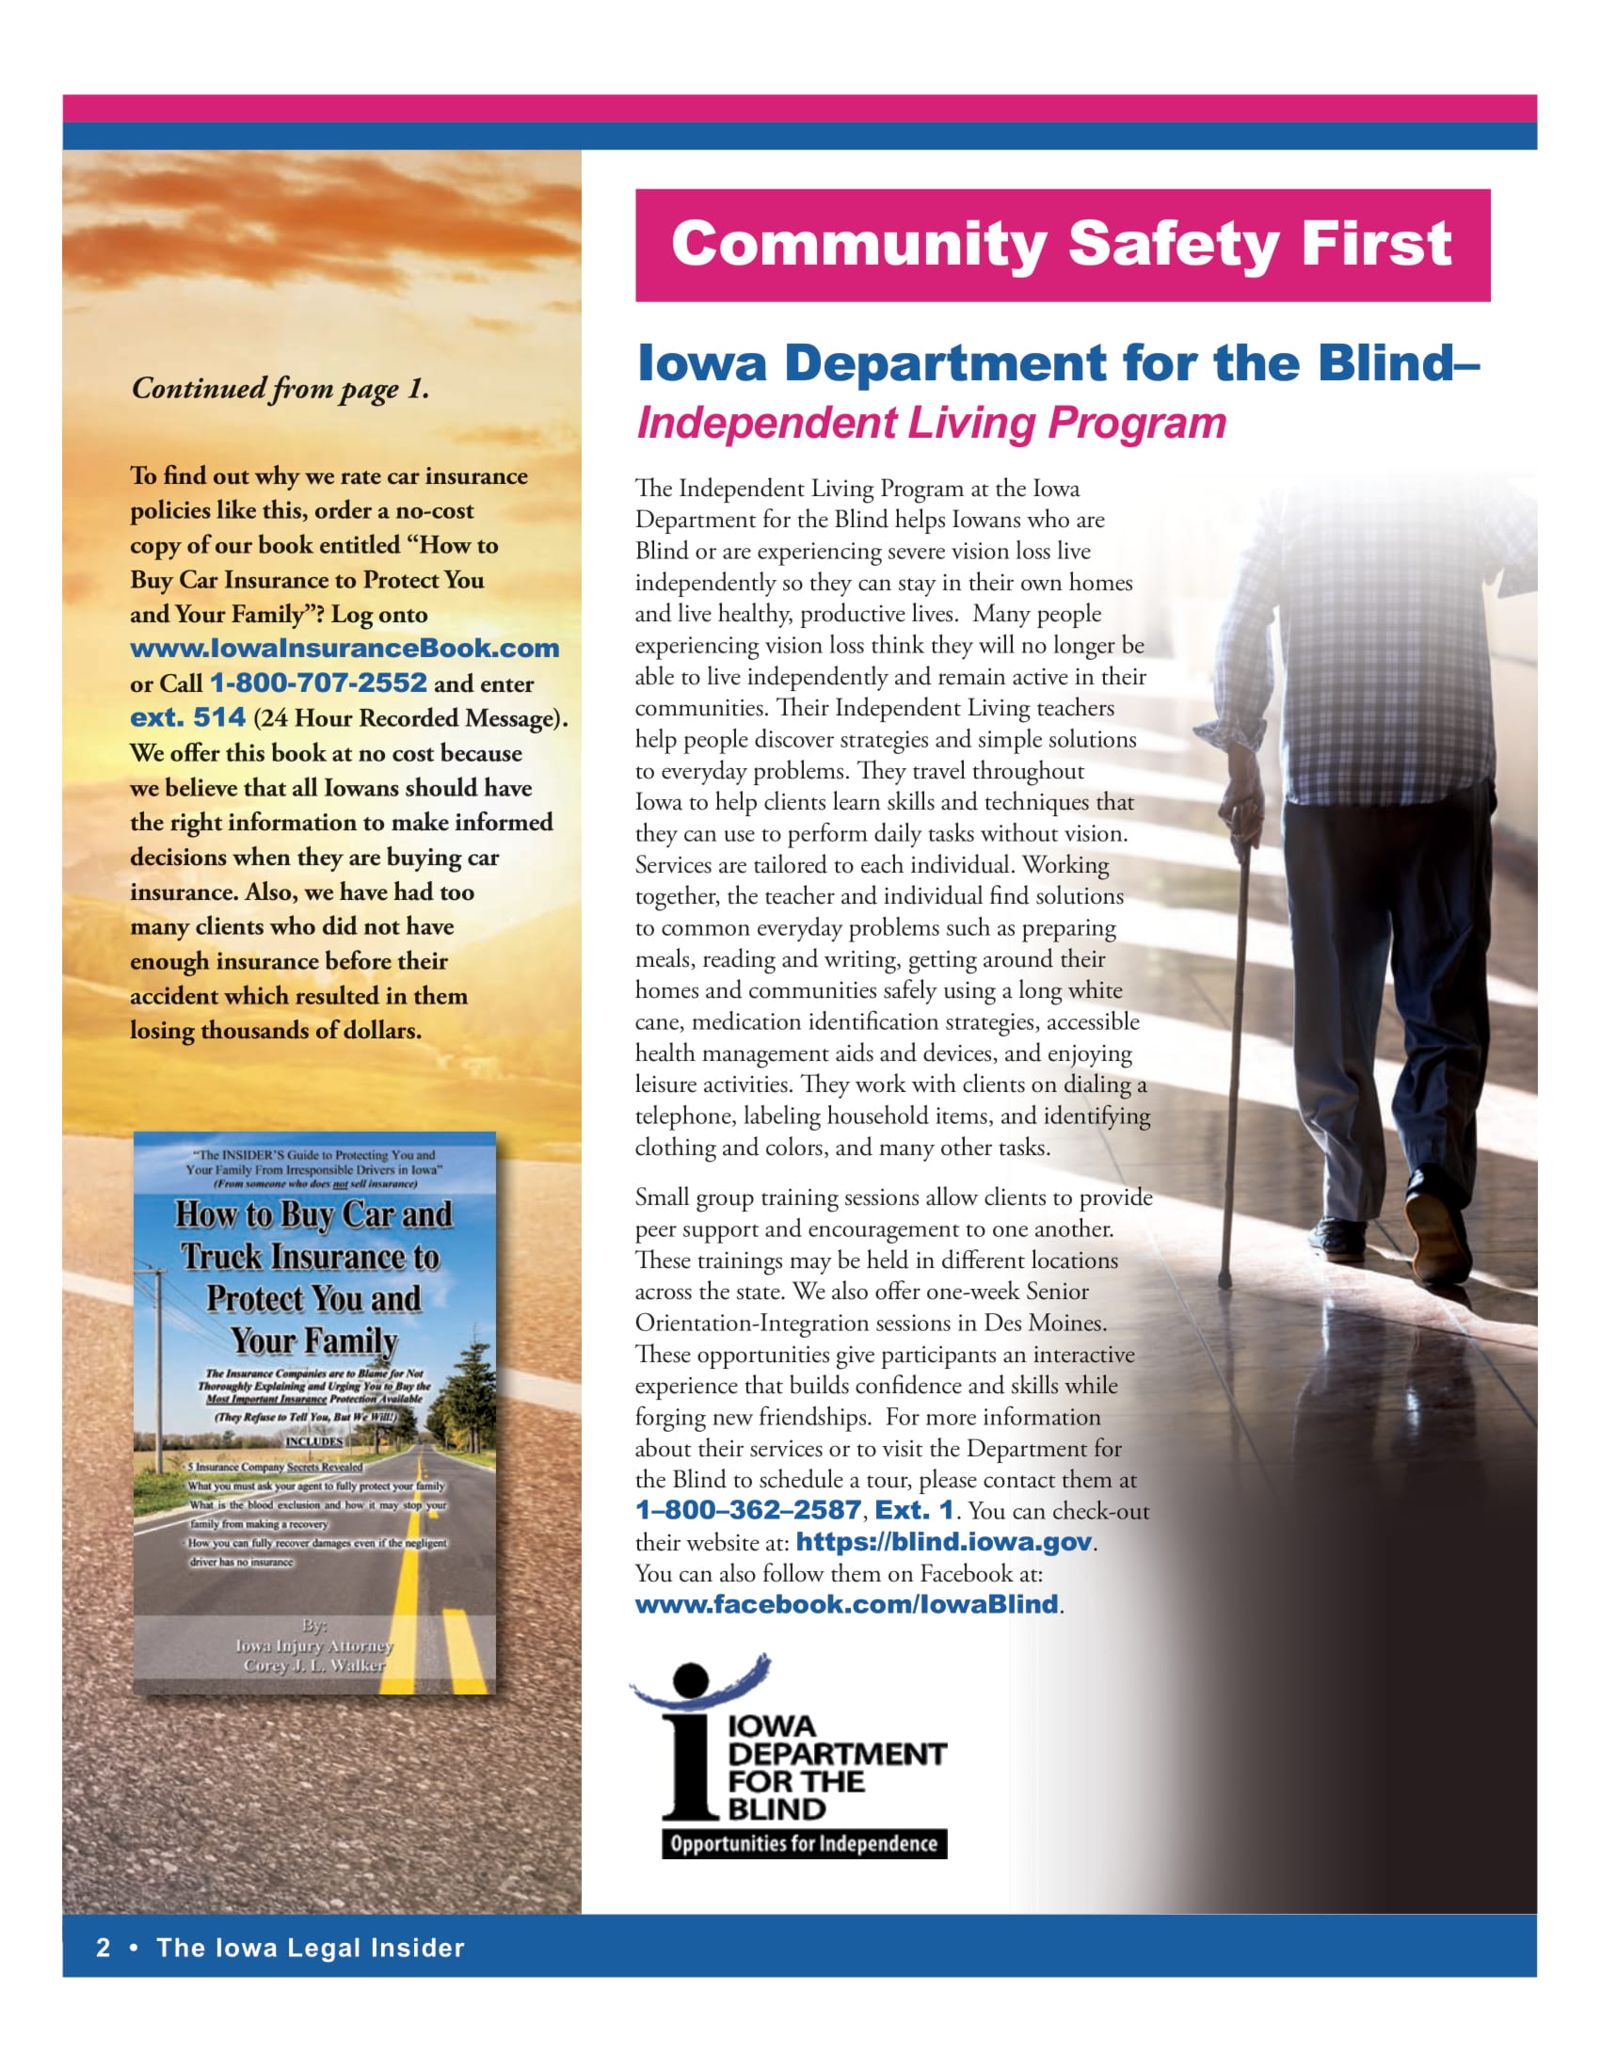 iowa department of the blind independent living program